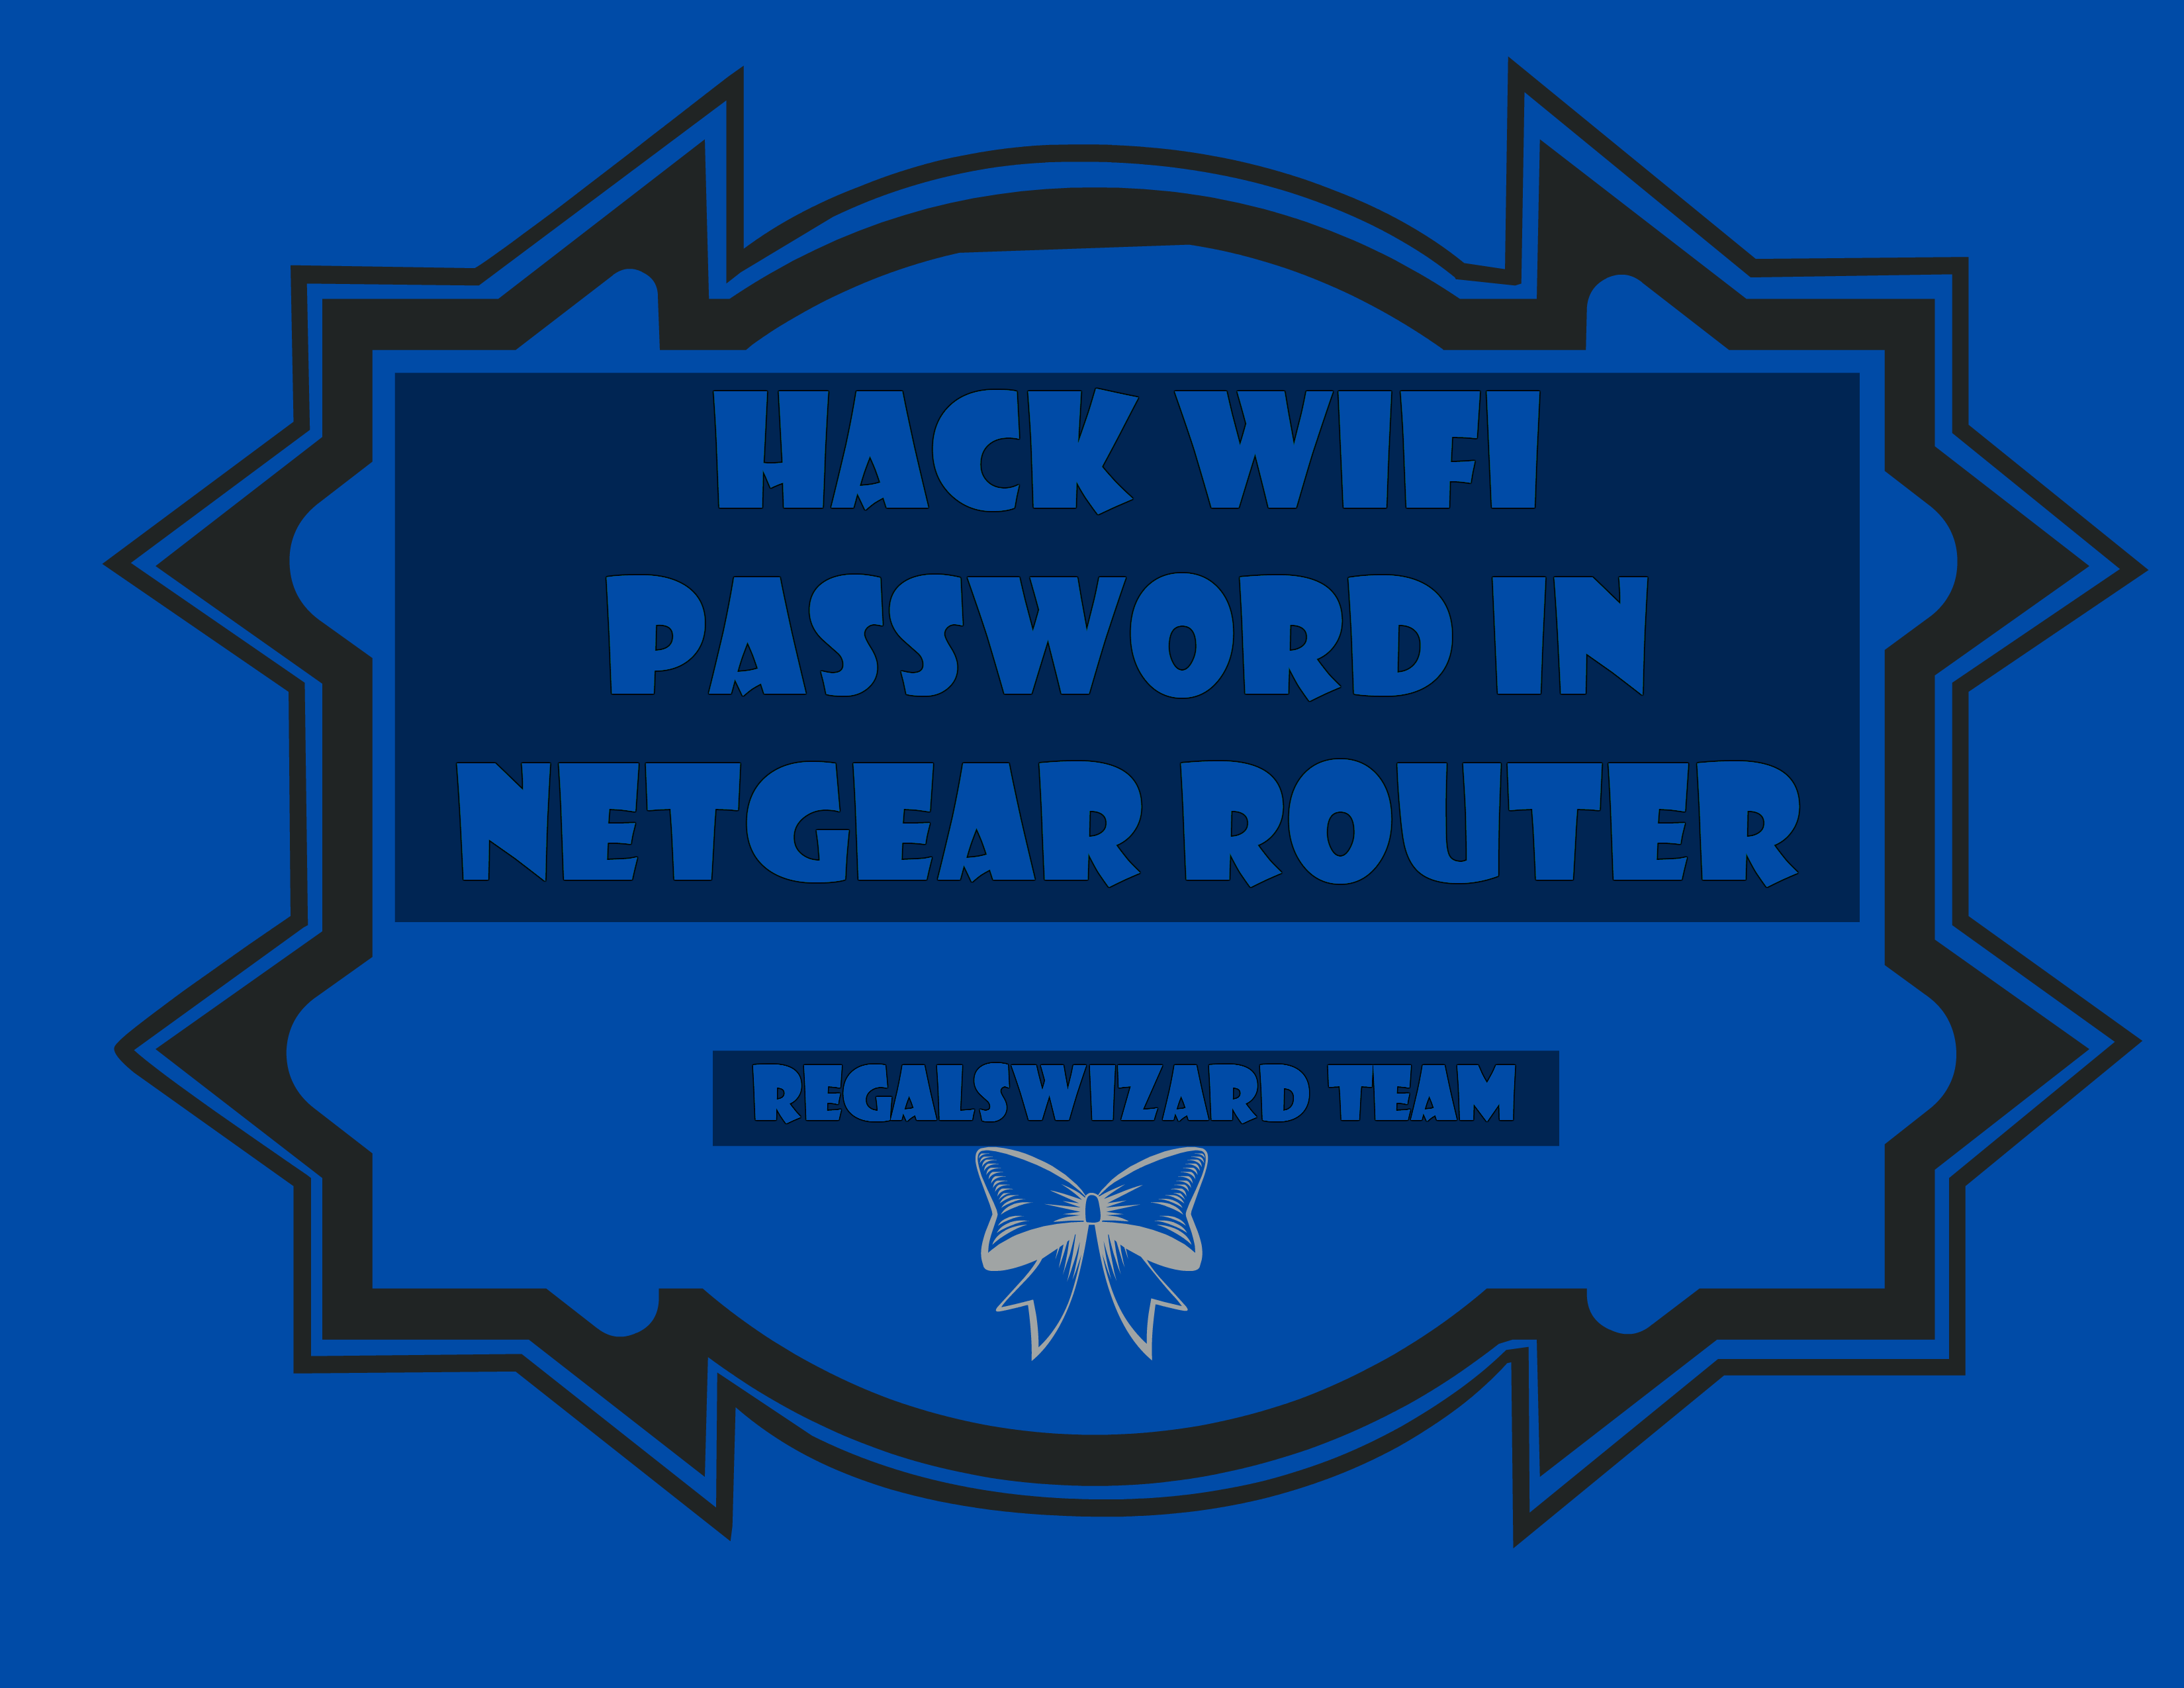 How to hack wifi password in netgear router android pinterest how to hack wifi password in netgear router greentooth Images